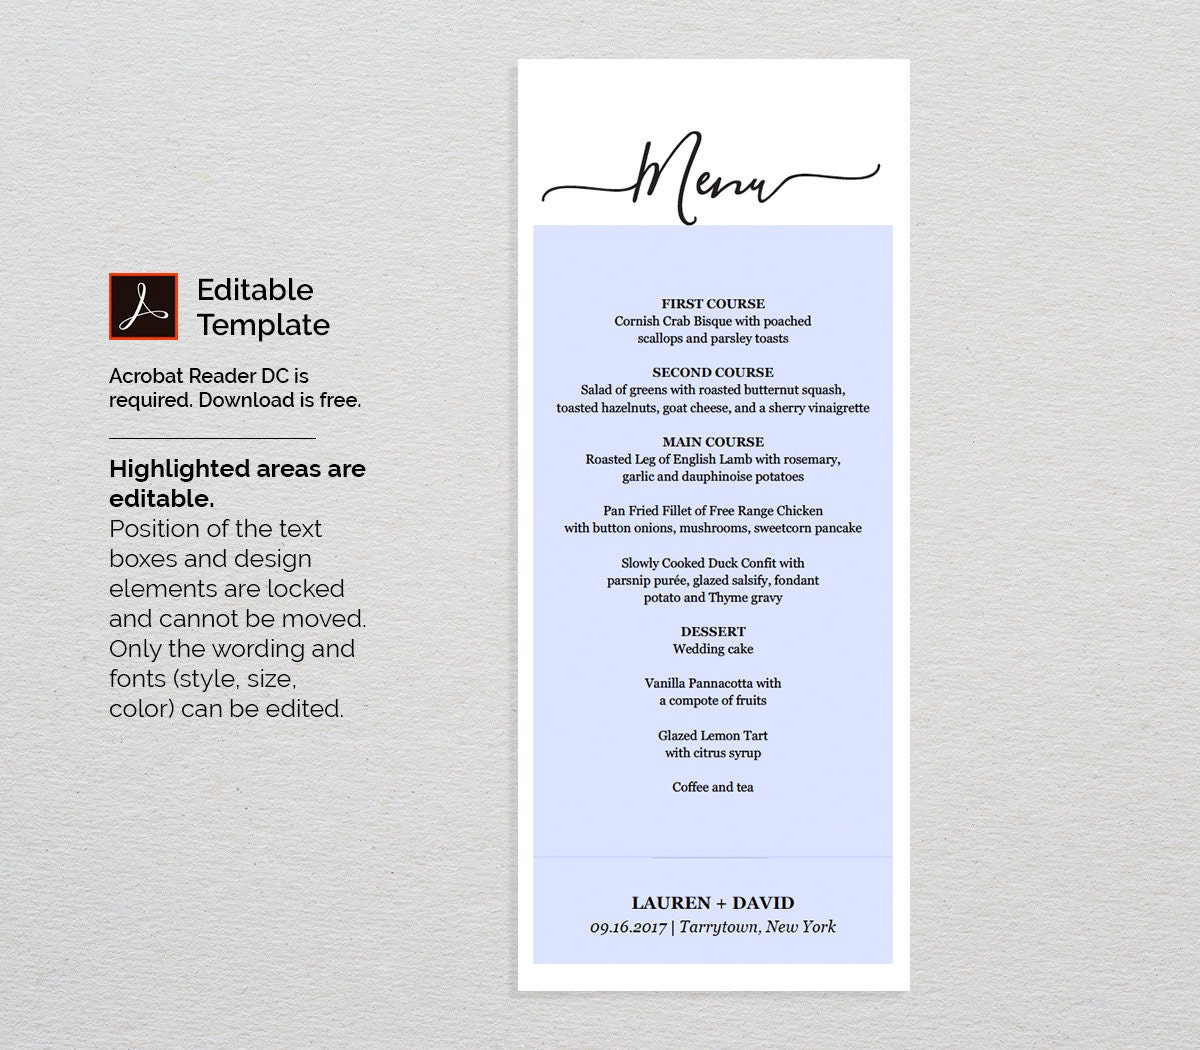 Doc10401300 Dinner Card Template PlaceCard Clip Art and – Free Remittance Advice Template